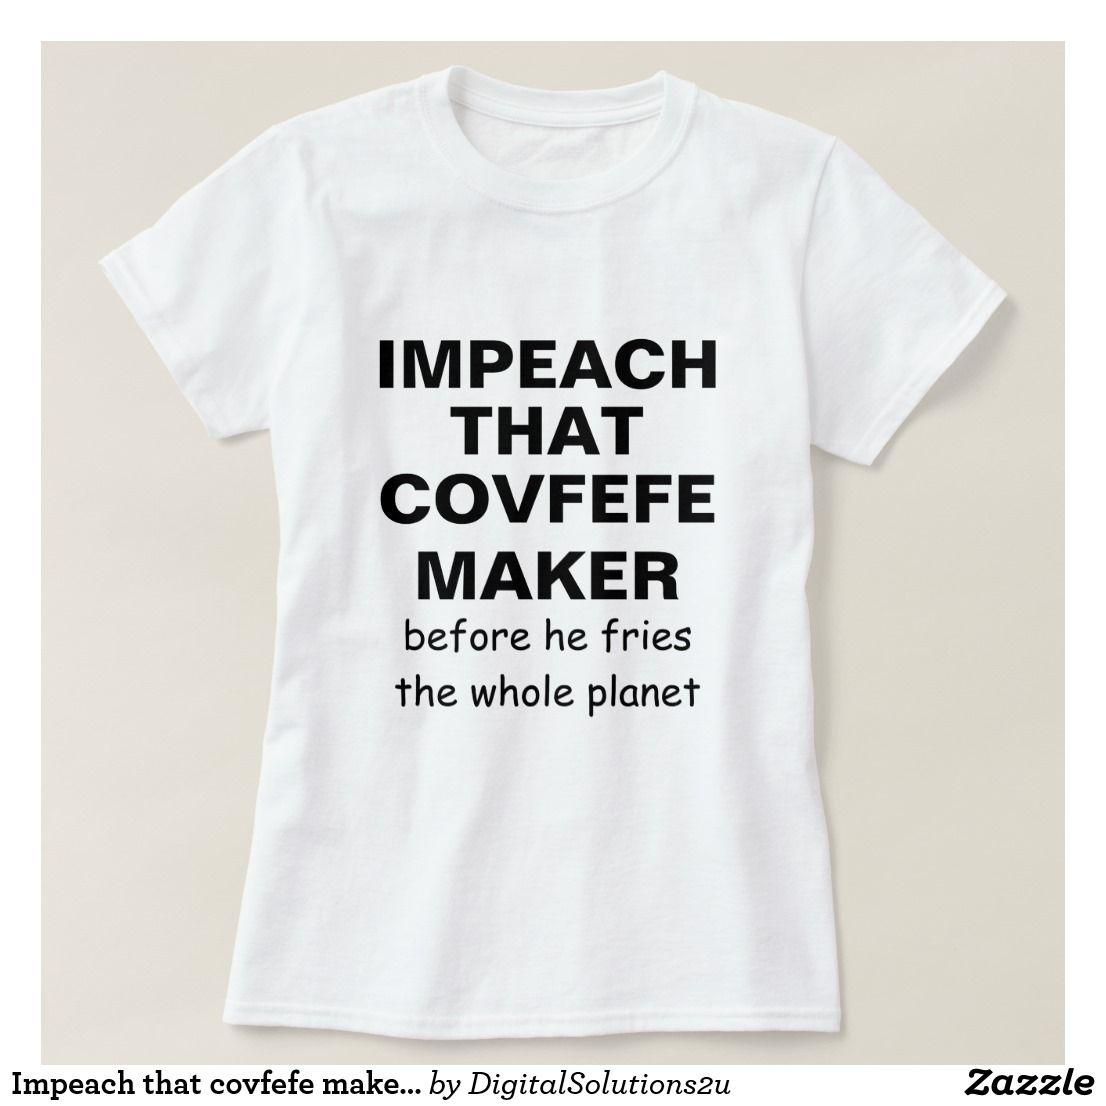 Design your own t shirt zazzle - Impeach That Covfefe Maker Customizable T Shirt